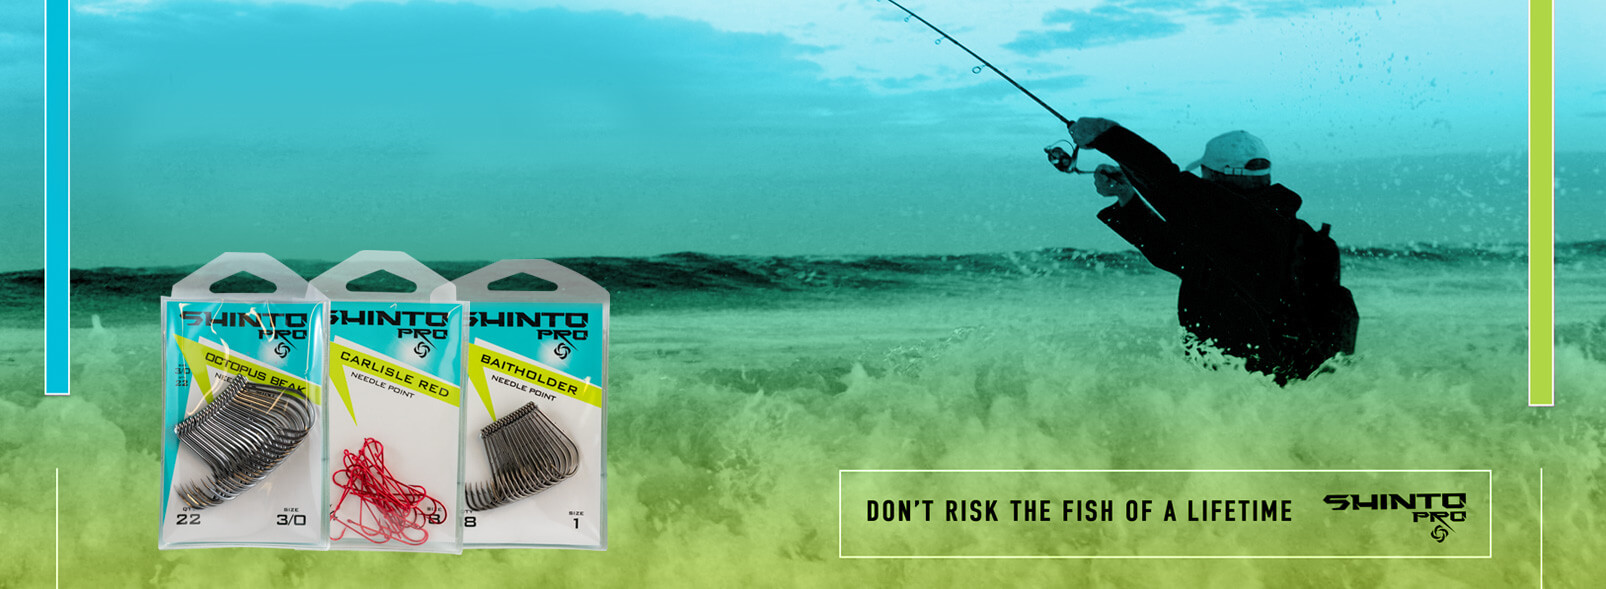 Shinto Pro Hooks don't risk the fish of a lifeetime image